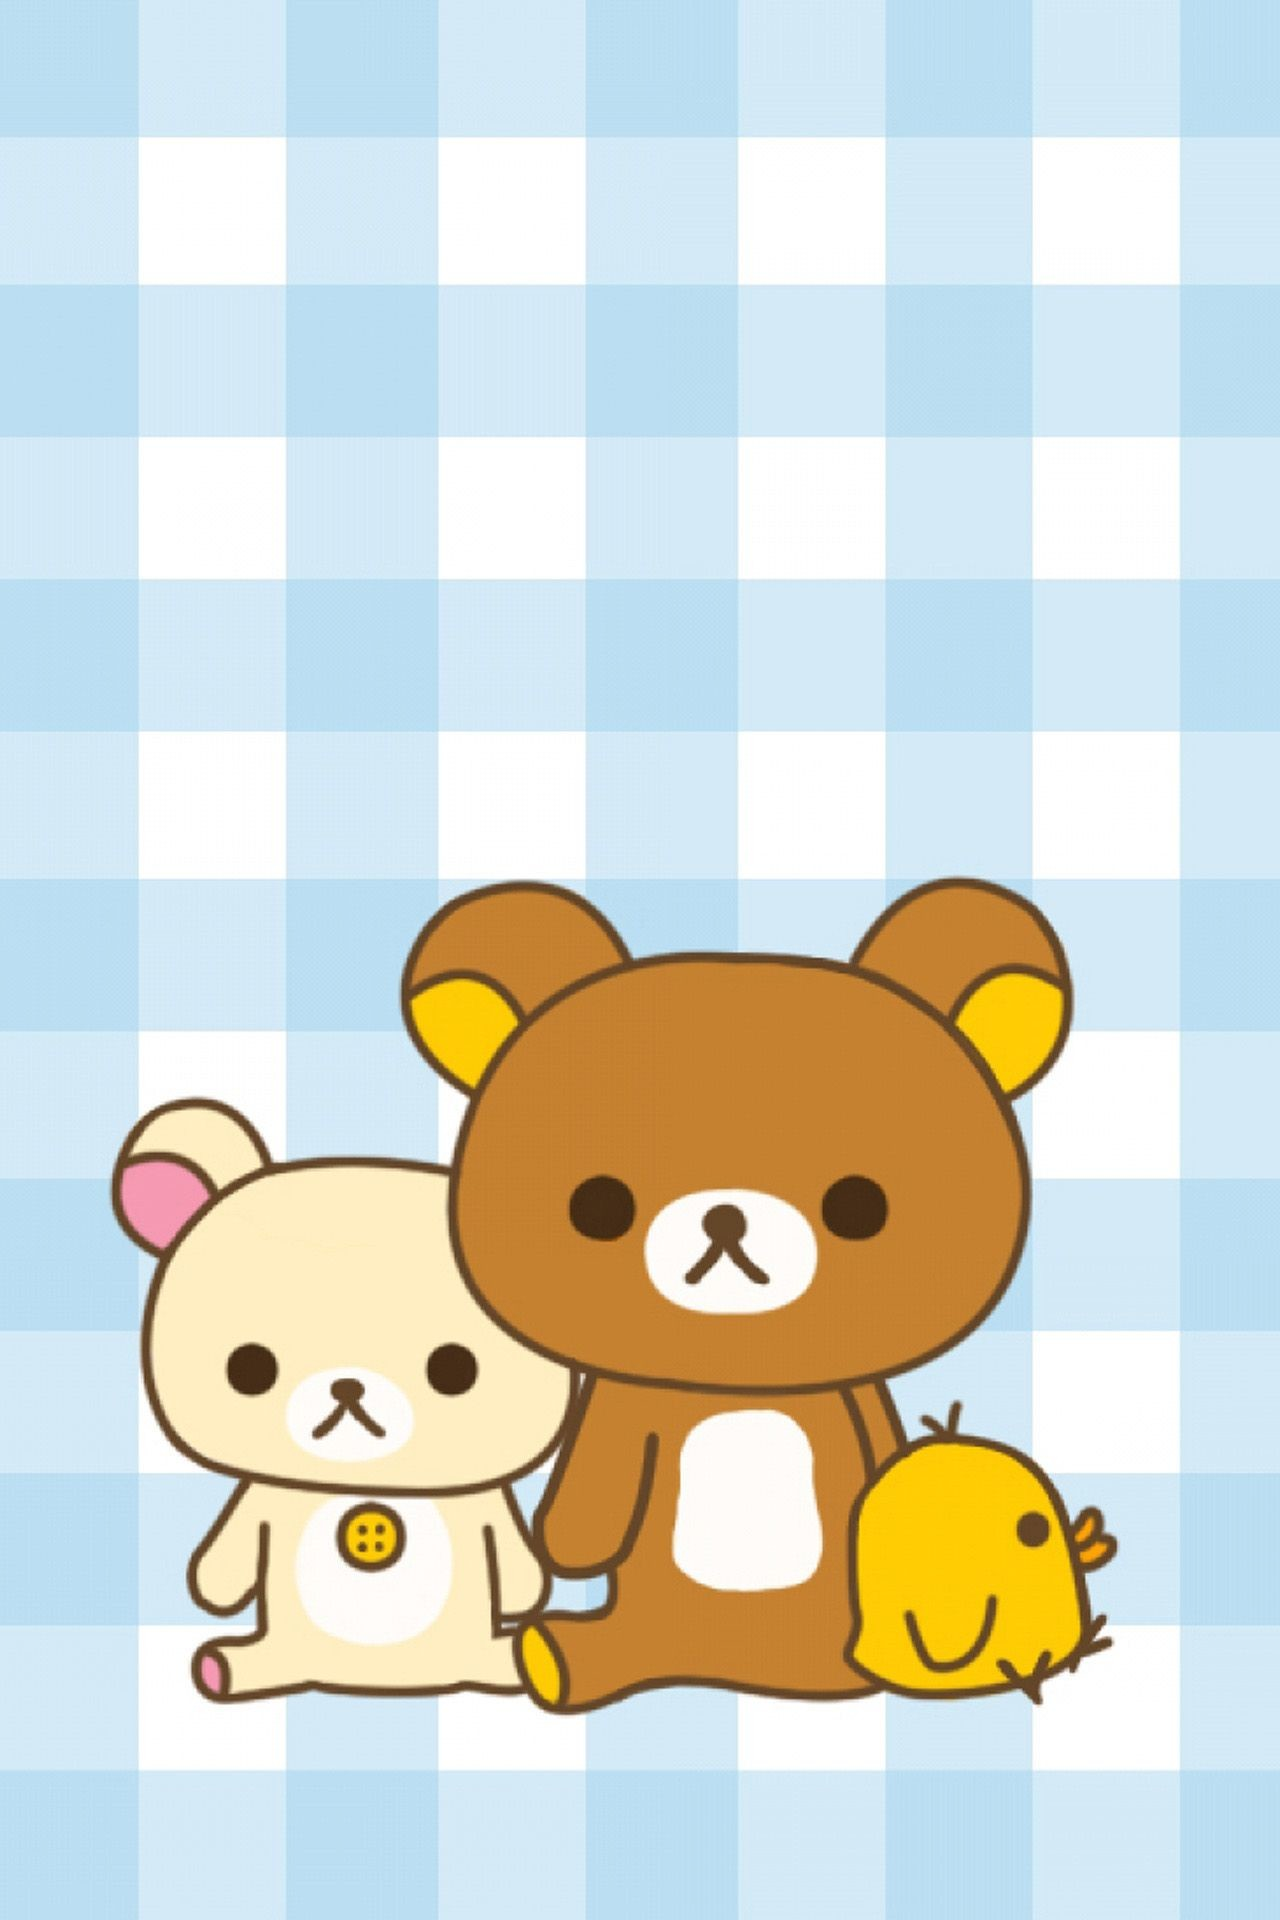 Res: 1280x1920, Cute Rilakkuma Wallpaper Phone